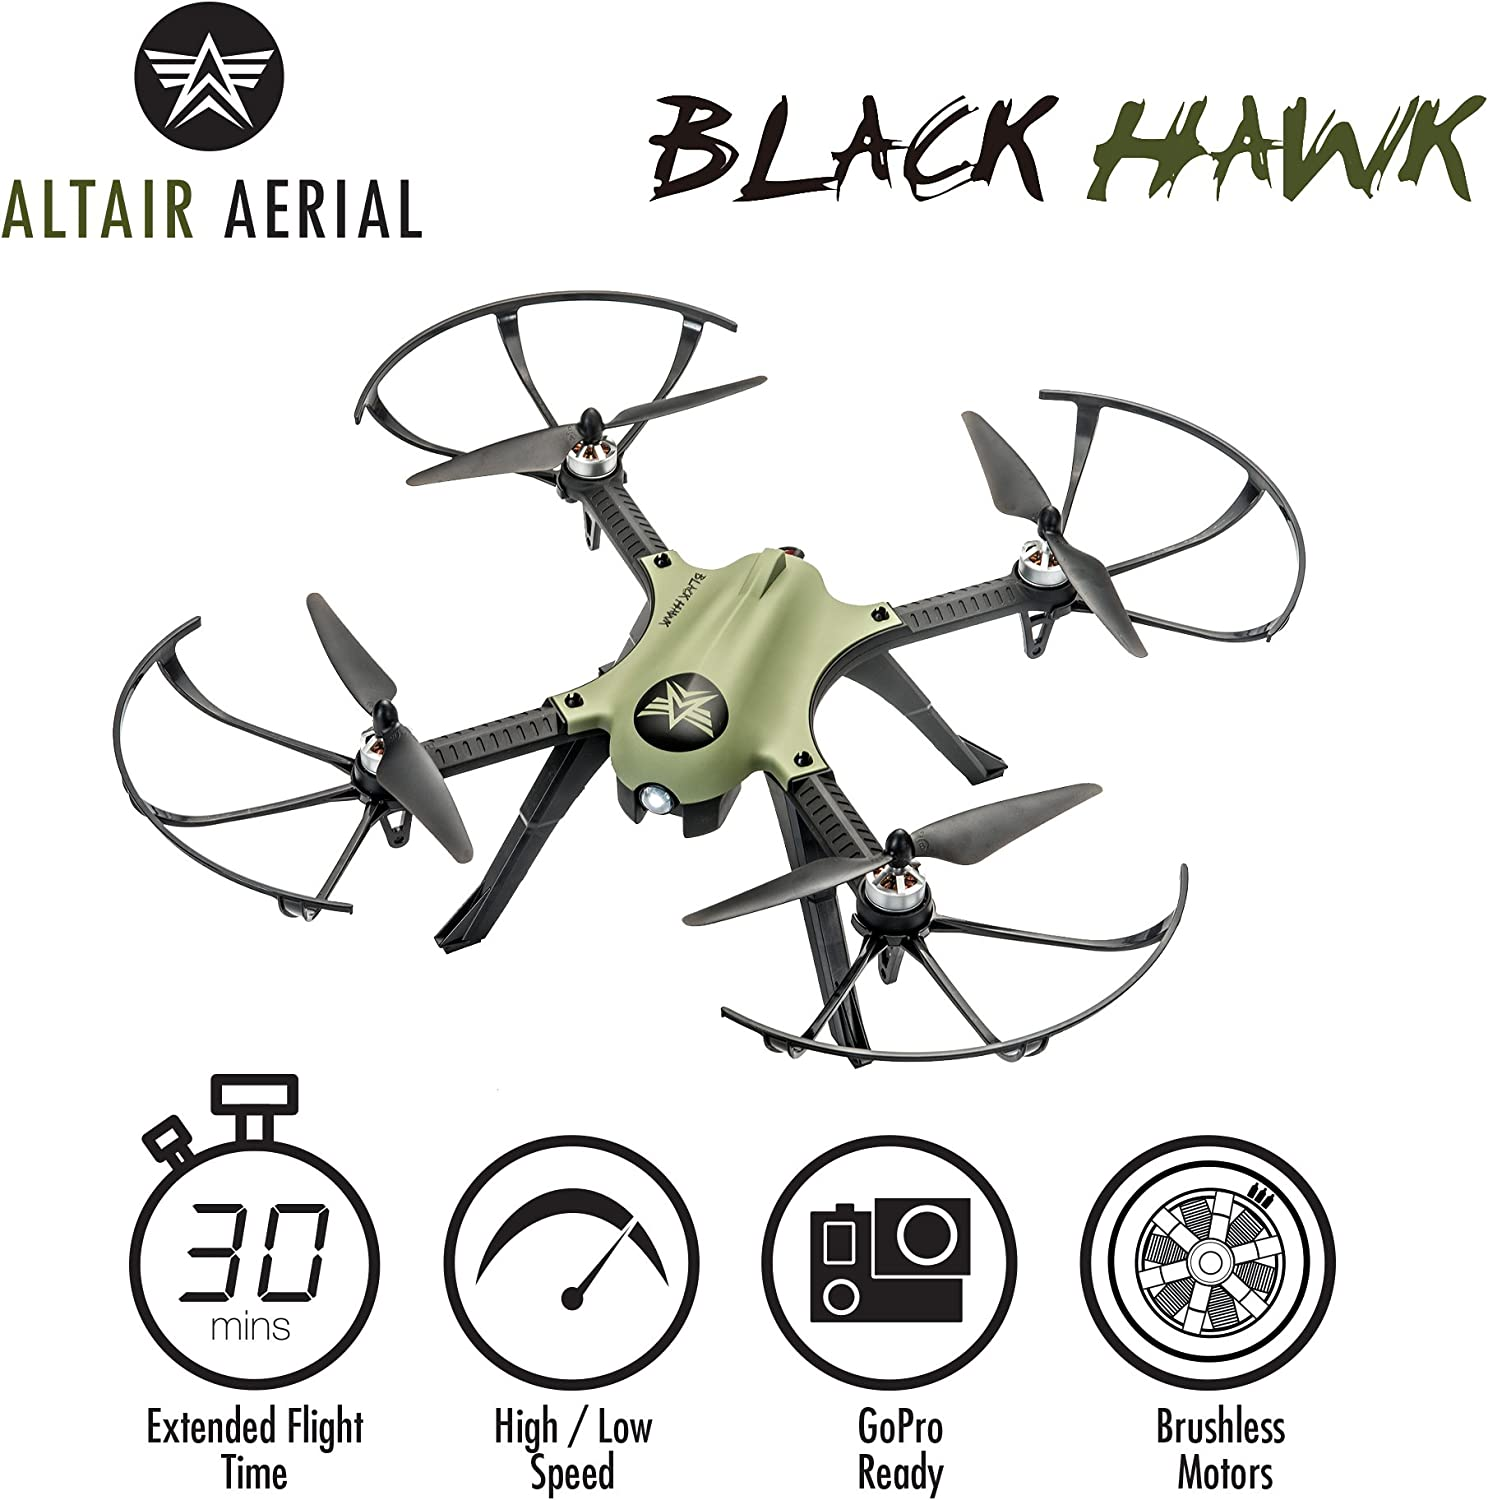 Altair Aerial Blackhawk is at # 1 for best drones without camera.